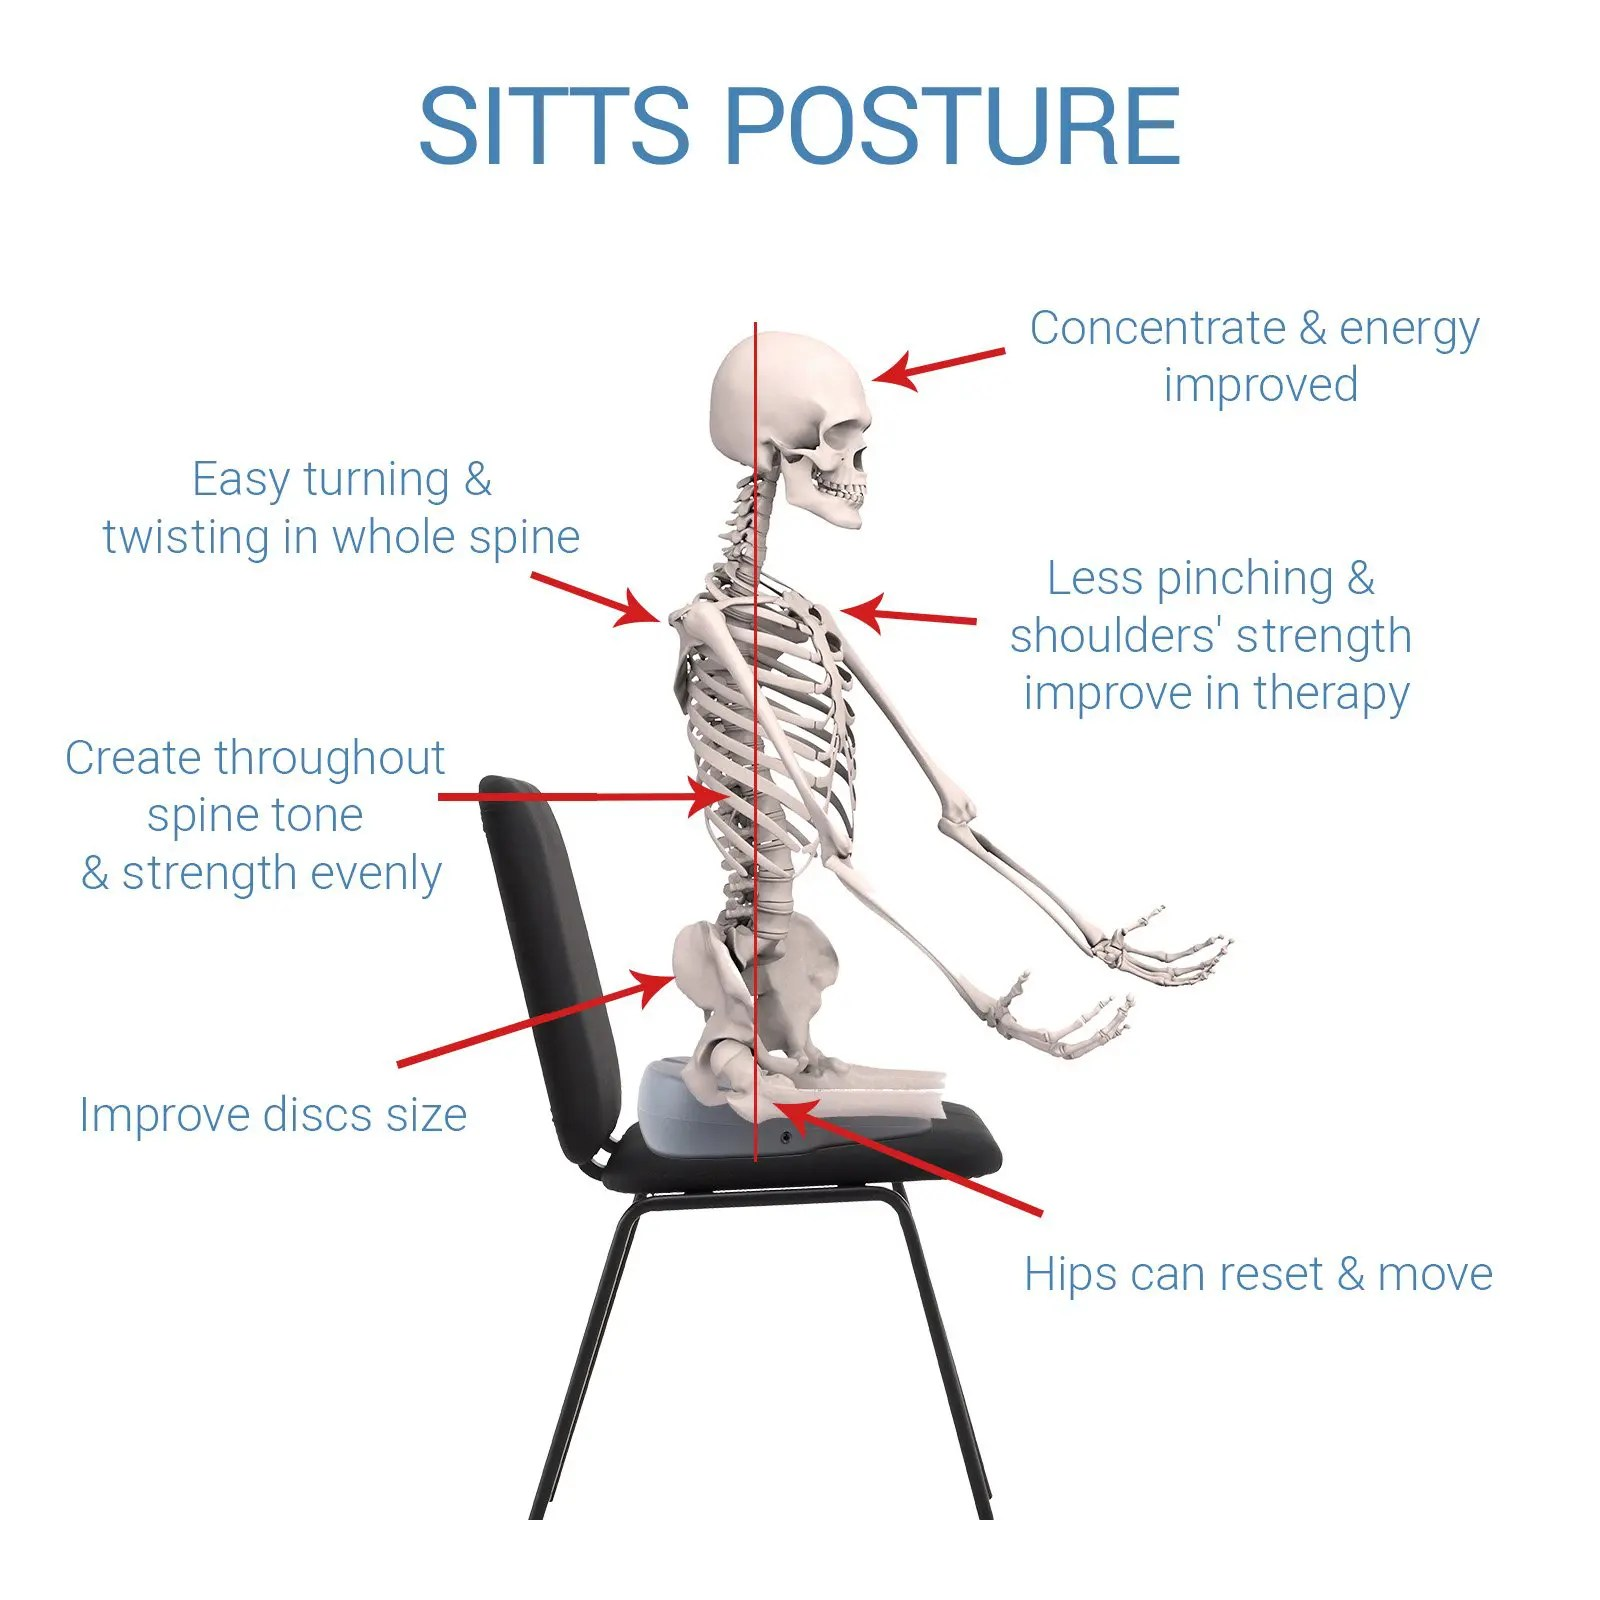 chair posture back pain palecek dining chairs sitts cushion relief by improving